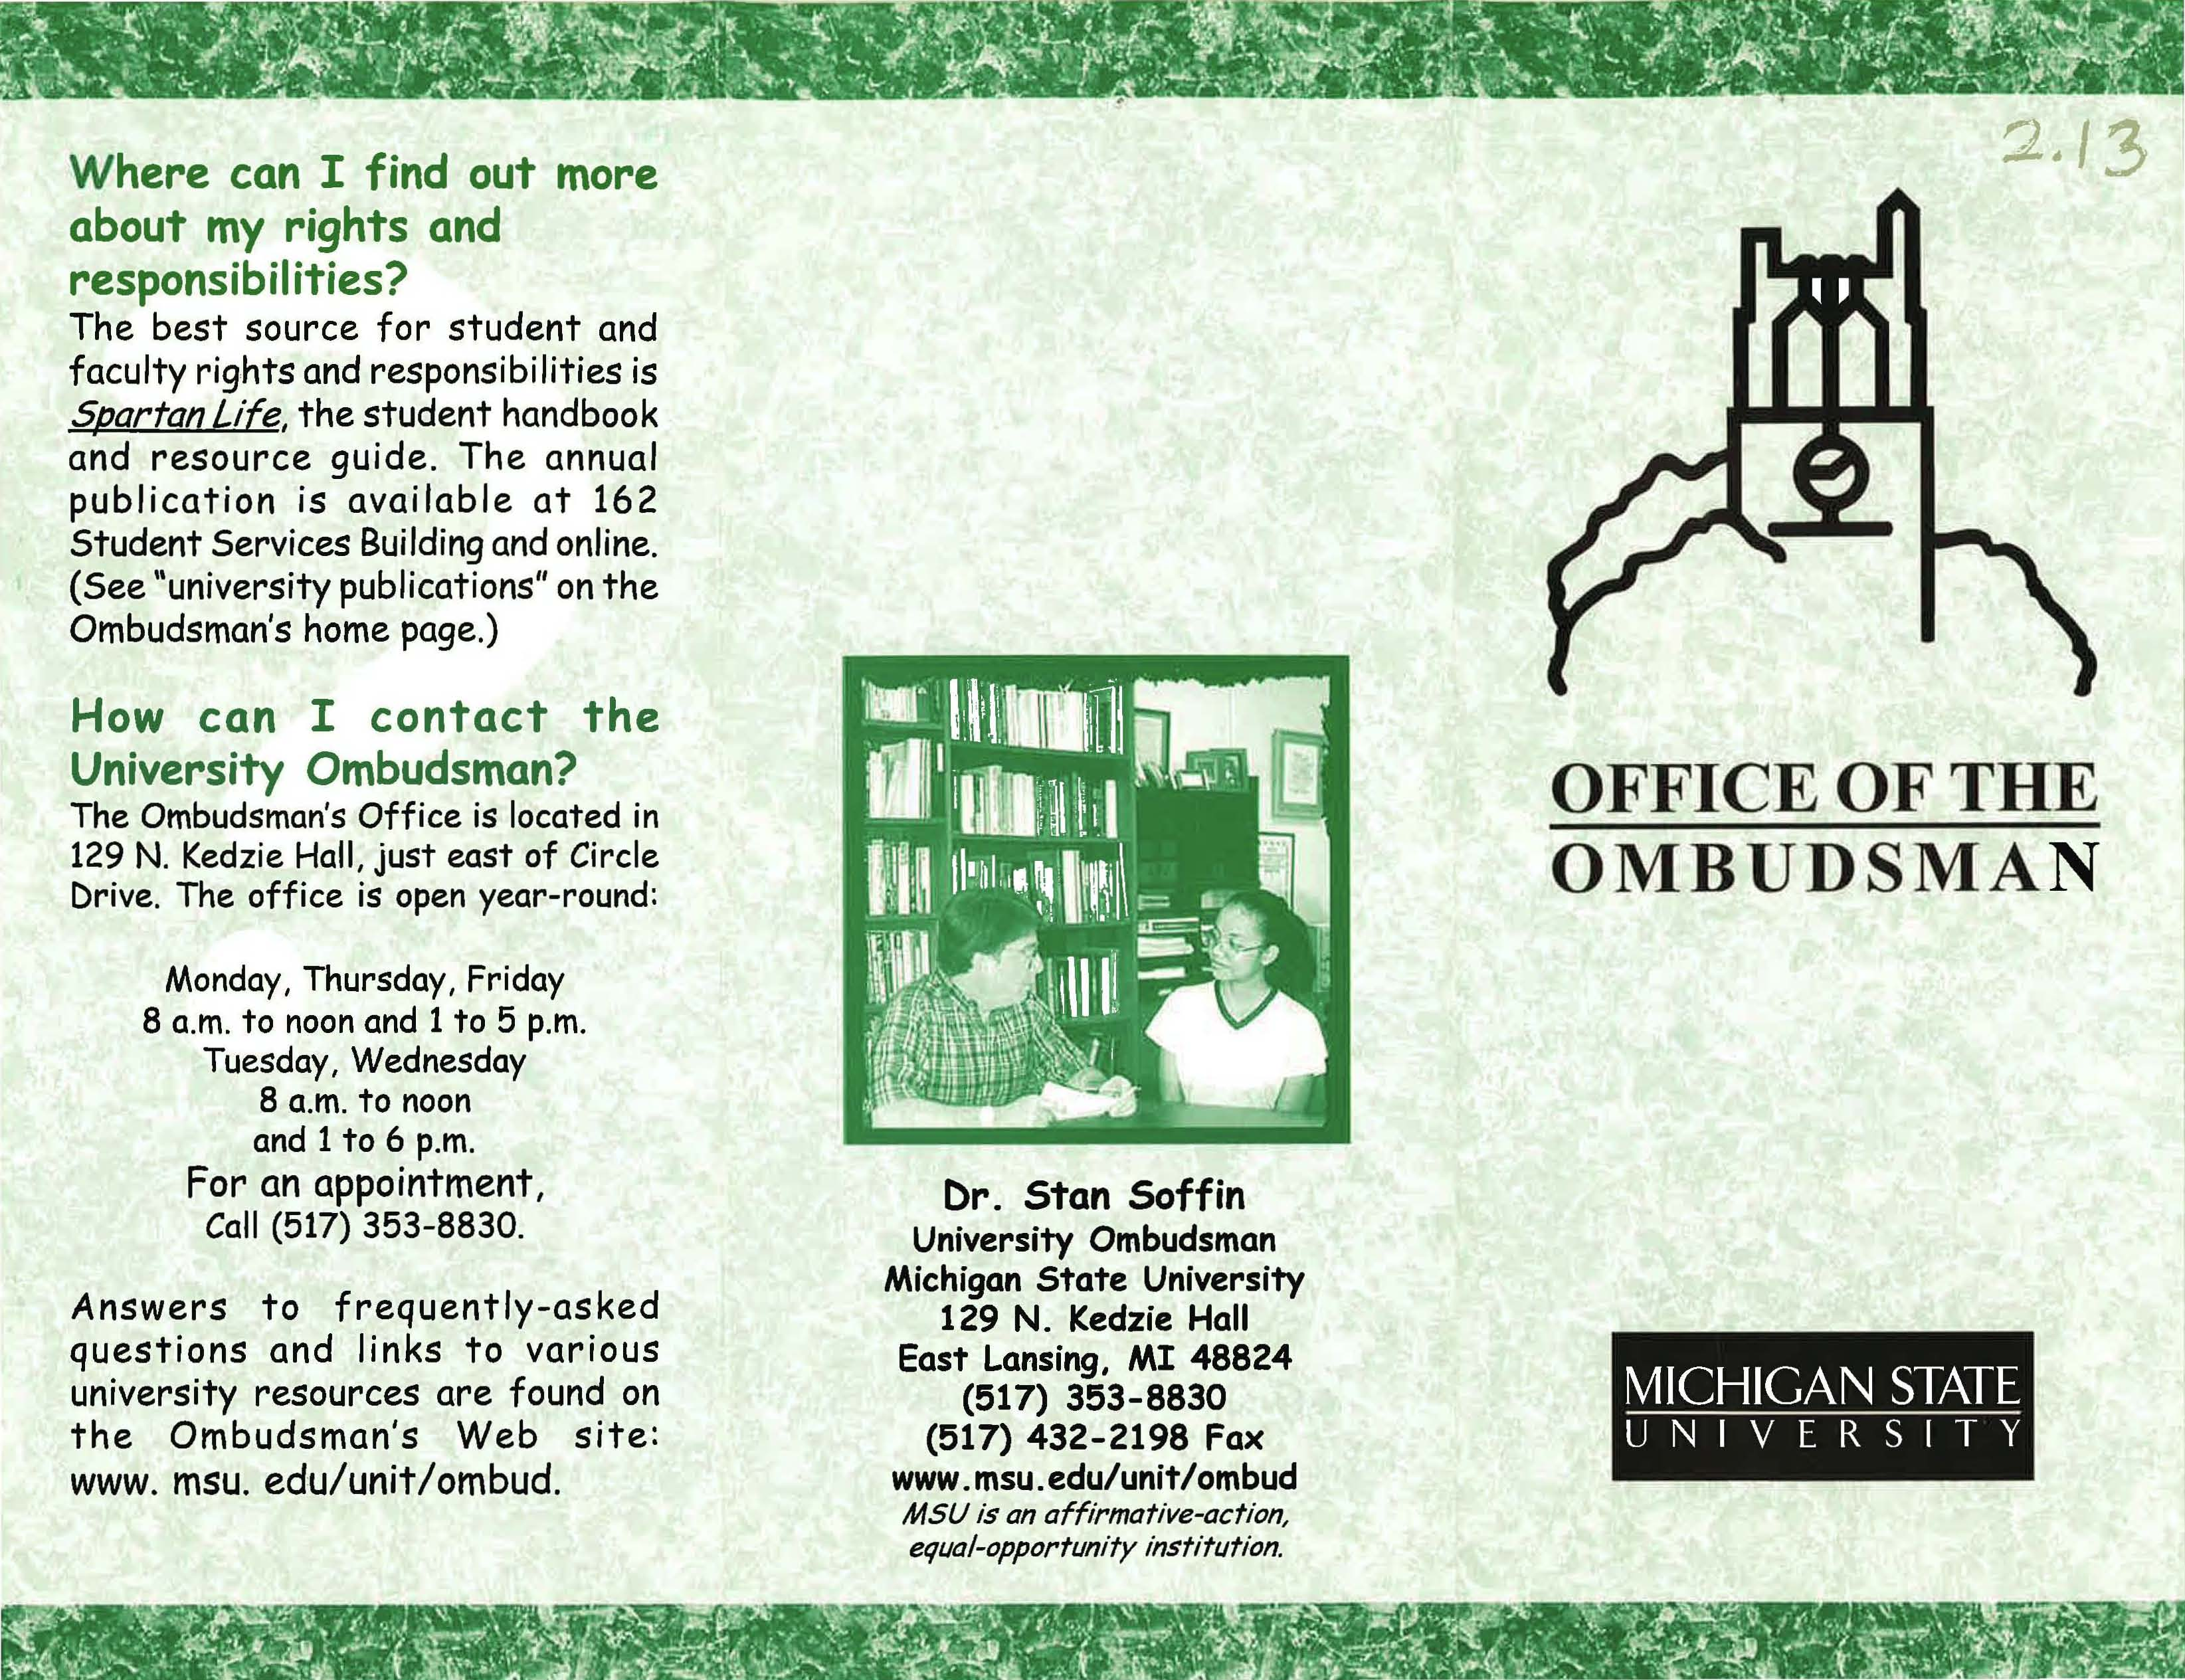 Office of the Ombudsman brochure, circa 2000